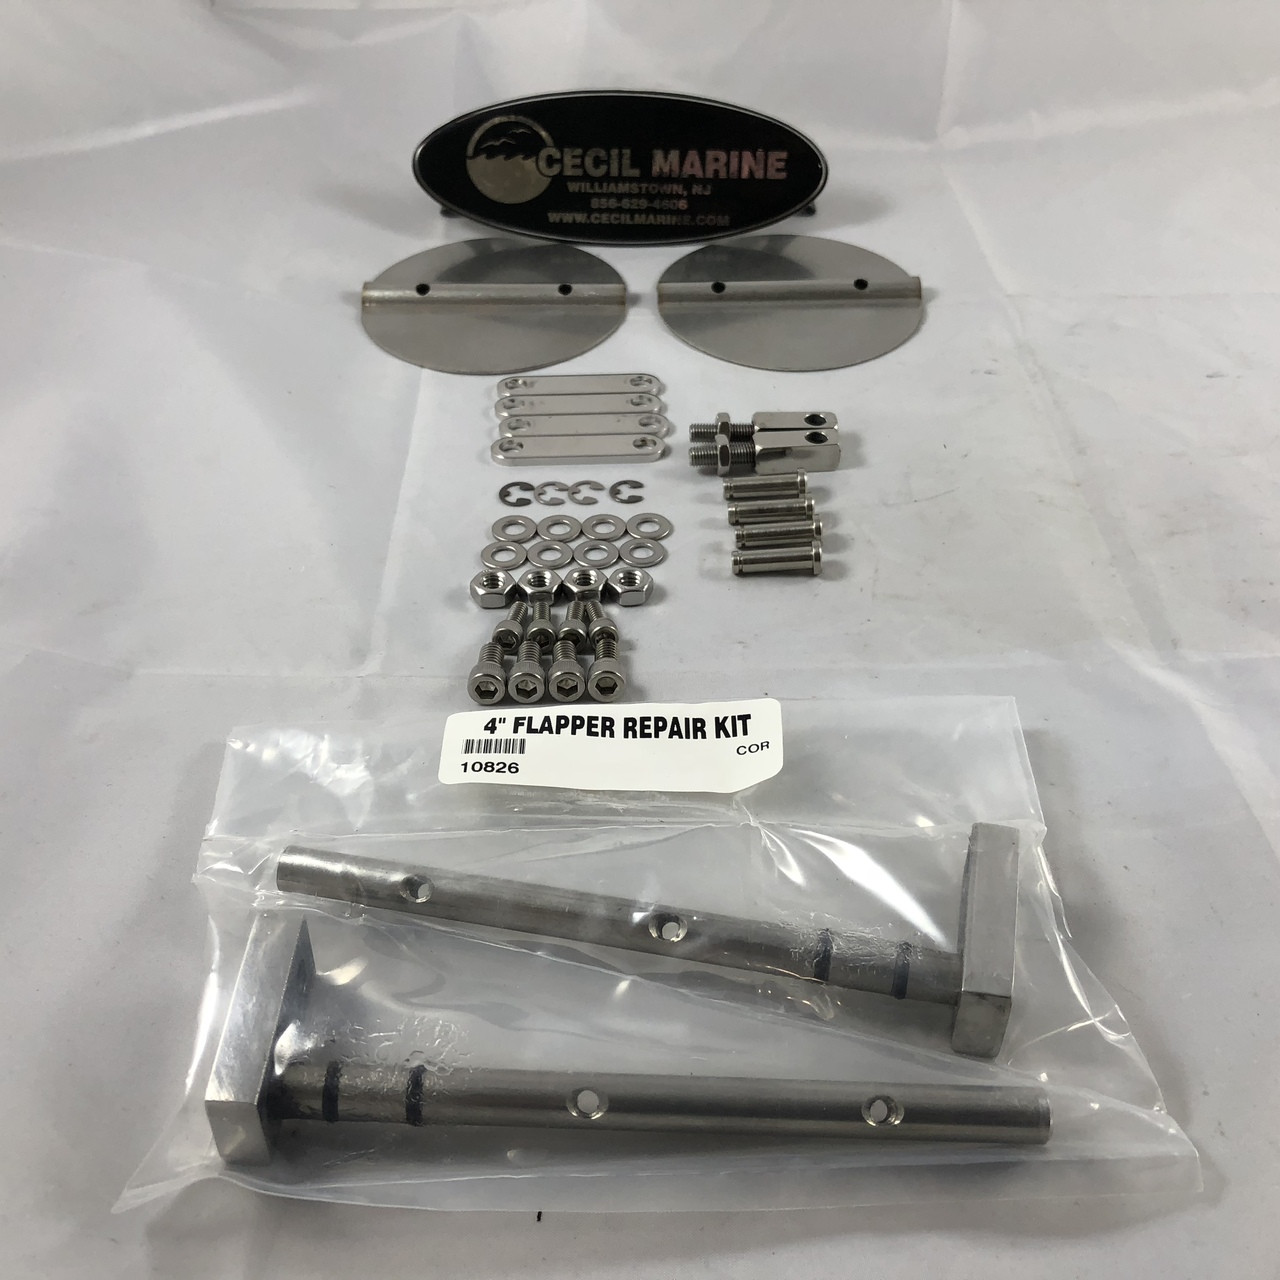 "CORSA QUICK & QUIET EXHAUST 4"" FLAPPER REPAIR KIT  ** IN STOCK & READY TO SHIP! **"